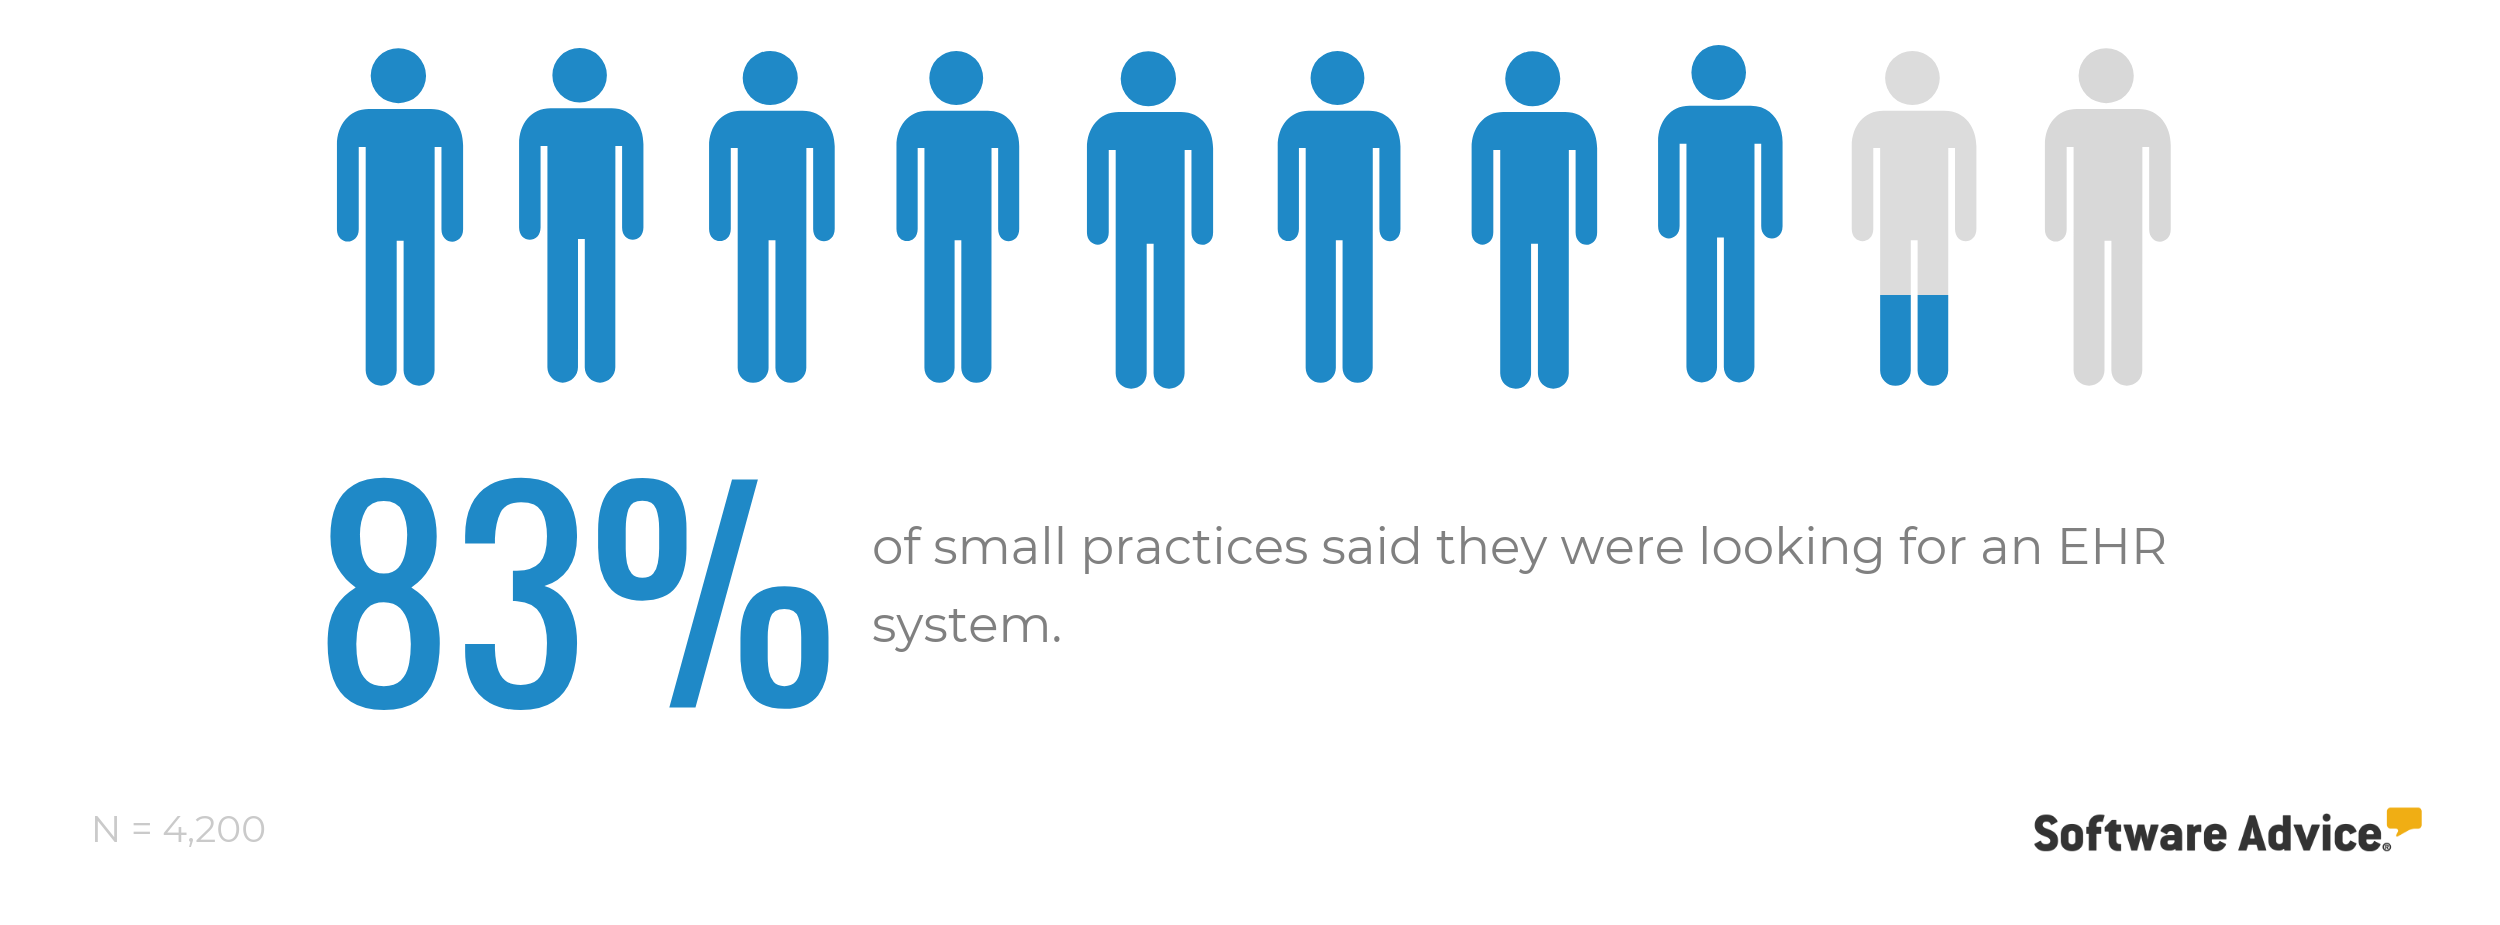 83 percent small practices are looking for EHR software